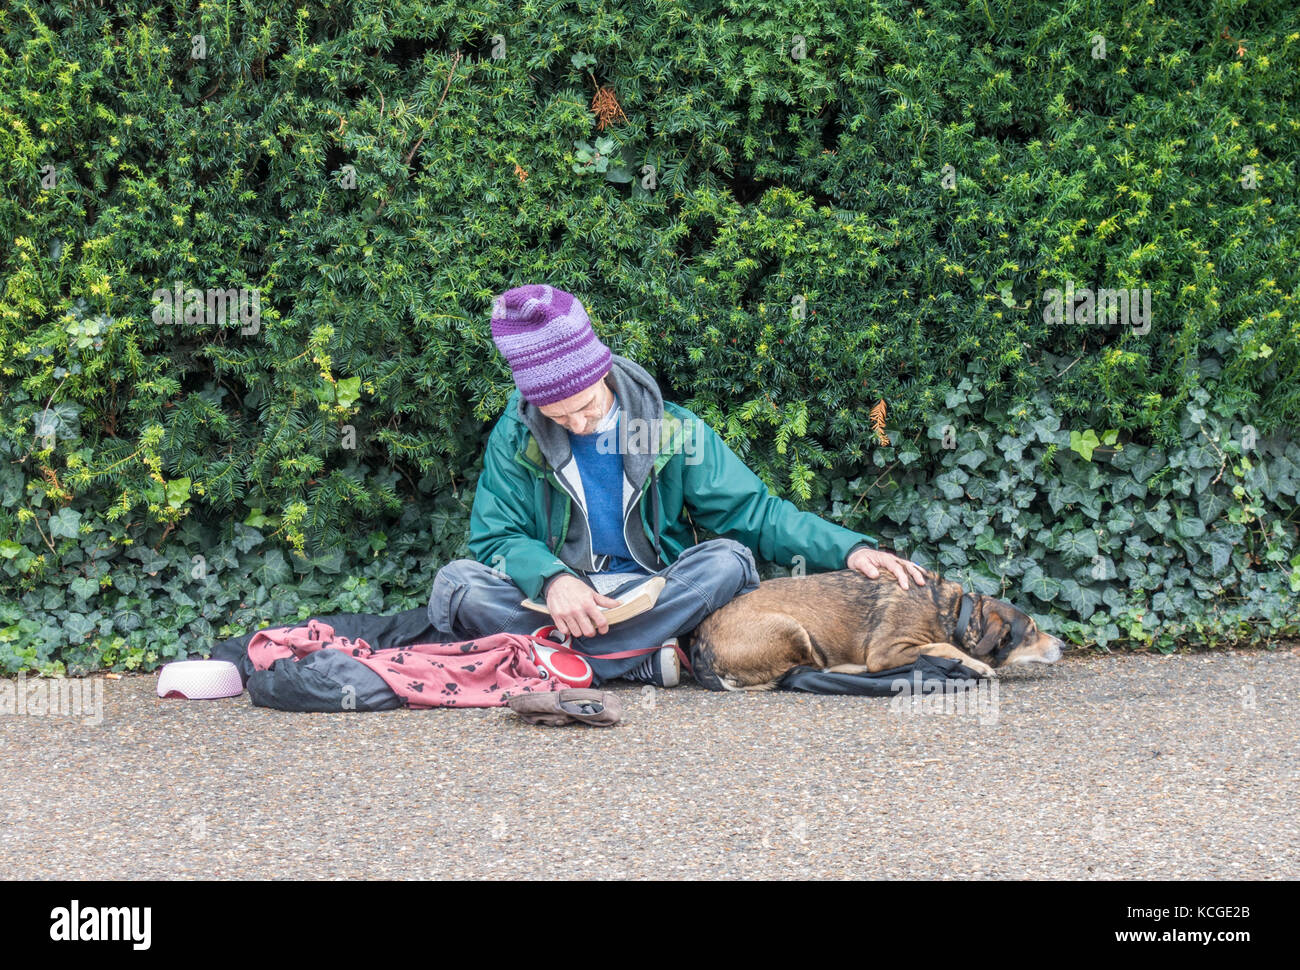 Elderly / old / senior homeless beggar man / rough sleeper, wearing a beanie hat, sitting reading a book with a - Stock Image